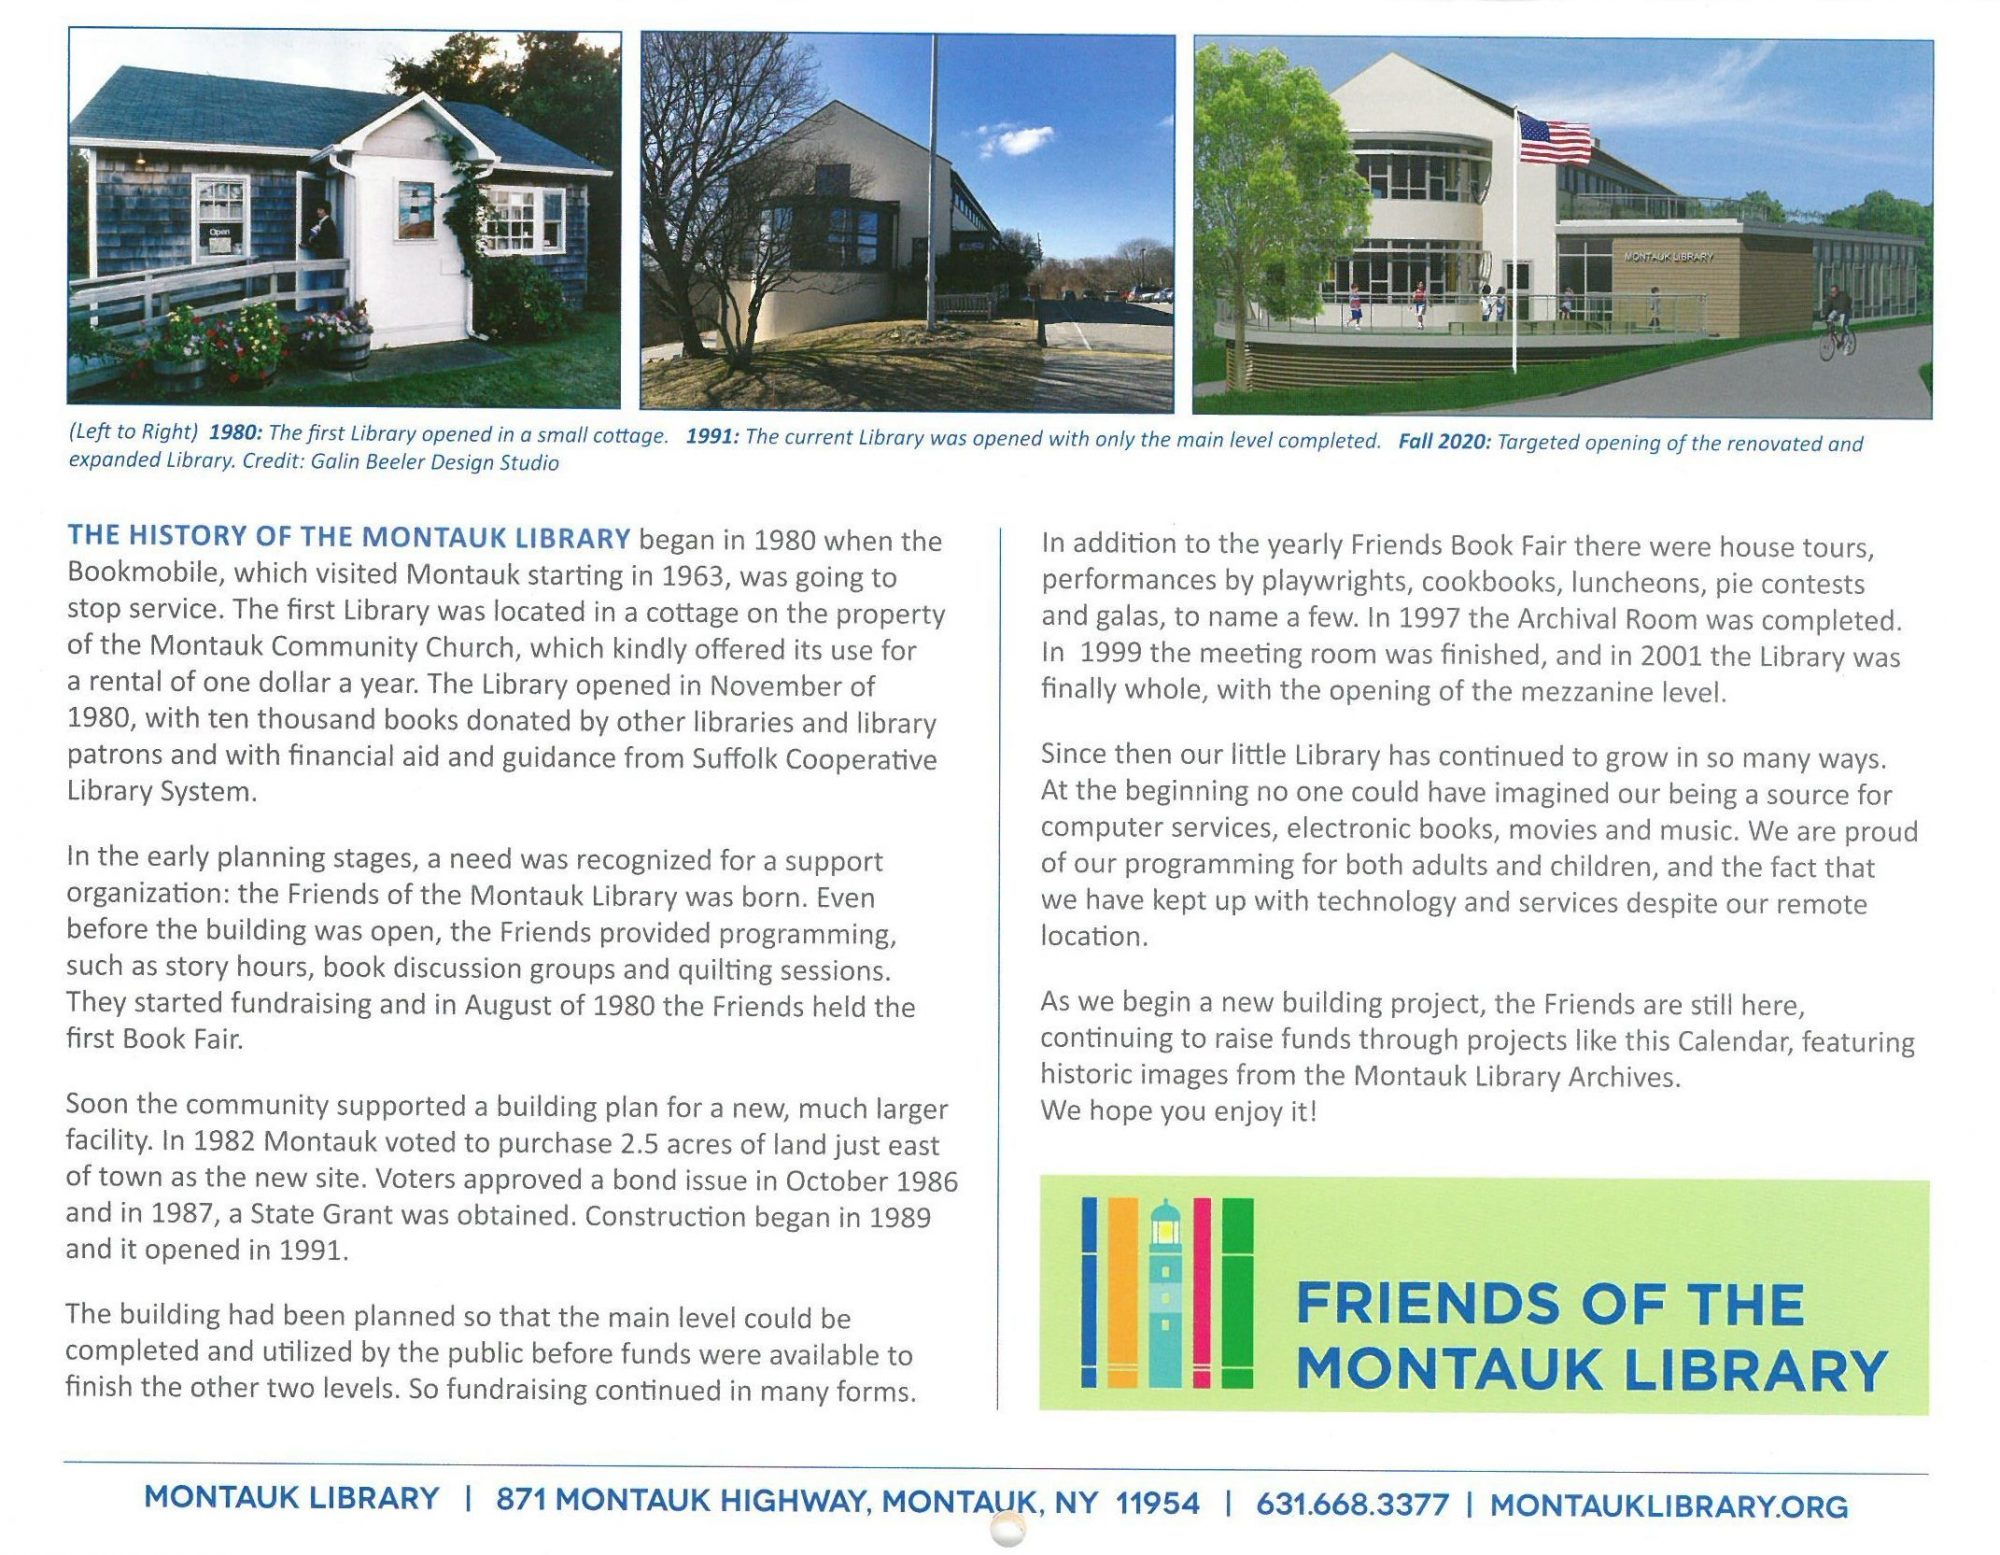 Friends Calendars are Here! - Montauk Library